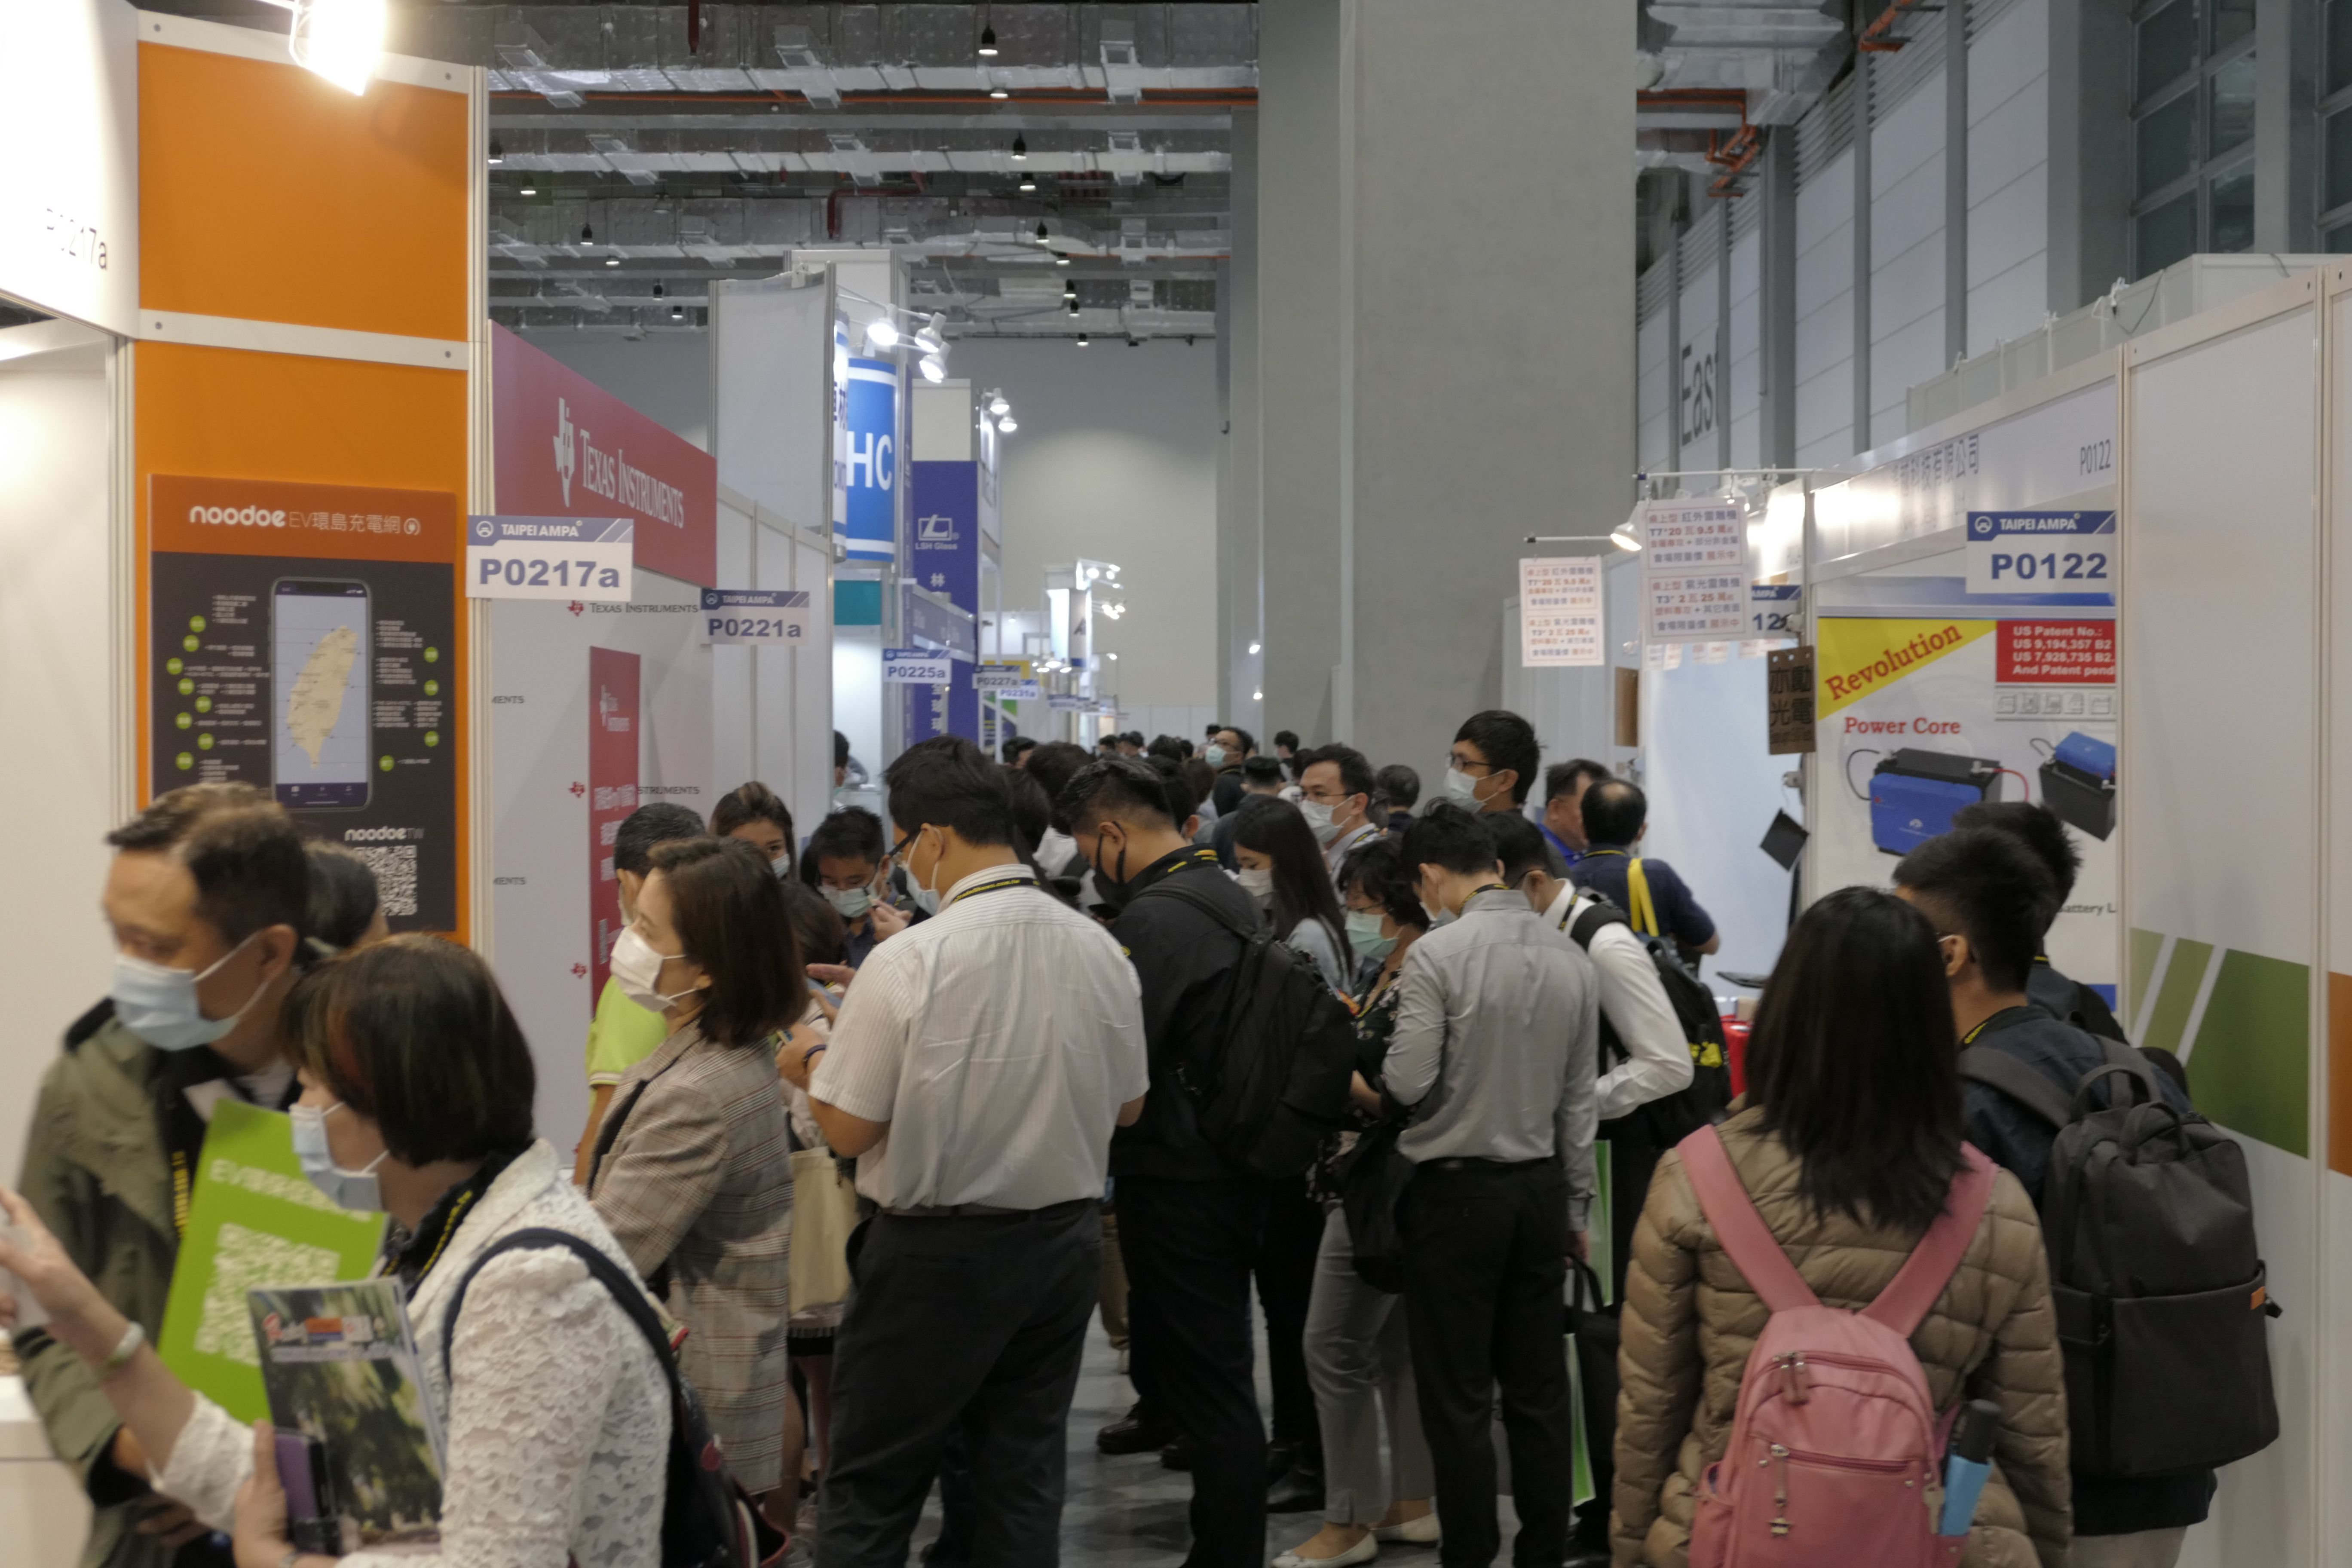 https://storage.googleapis.com/www.taiwantradeshow.com.tw/activity-photo/202010/T-54024770-name.jpg